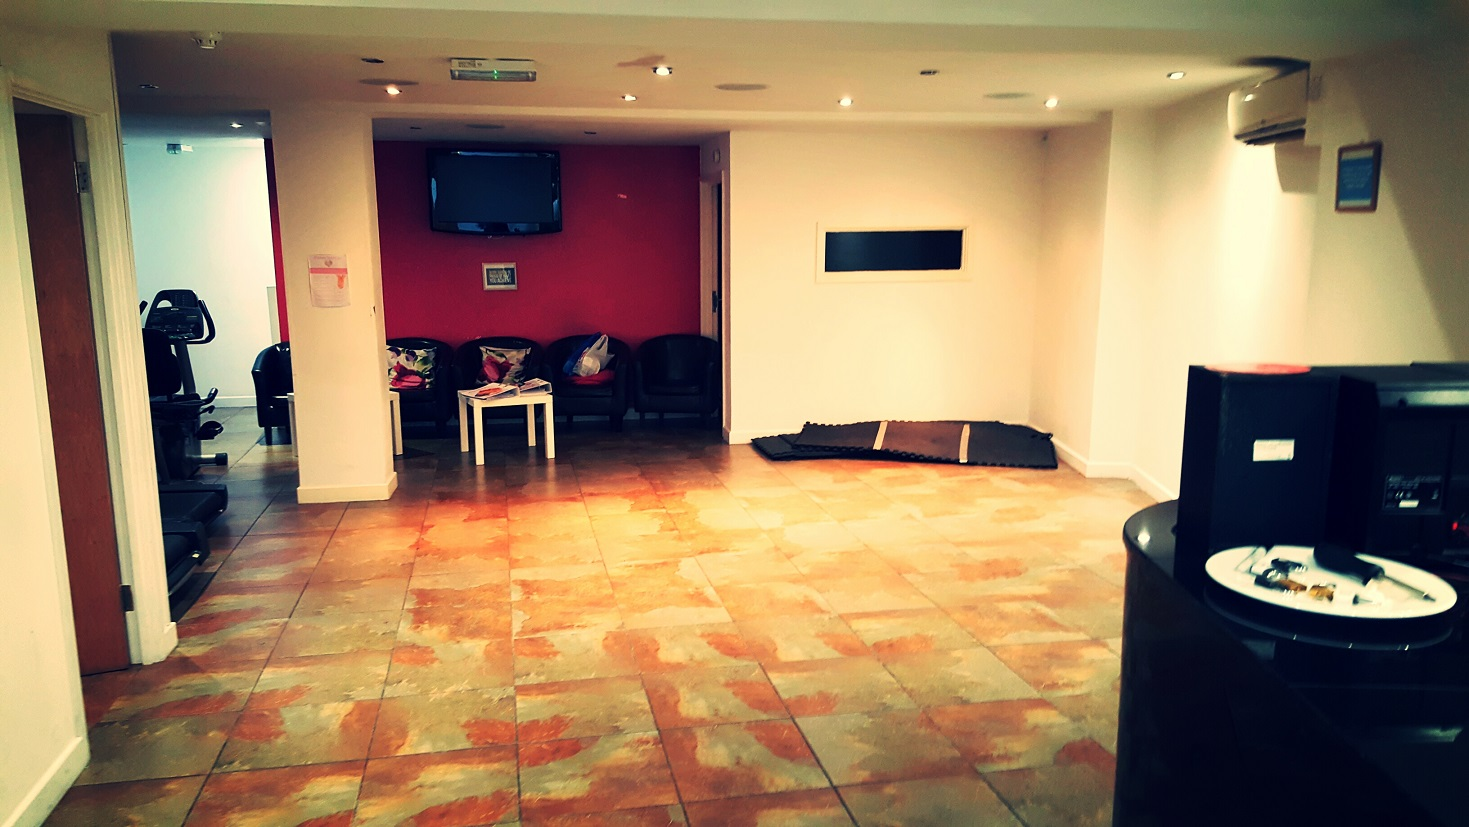 Amarkai Fitness Studio in South East London 3.jpg